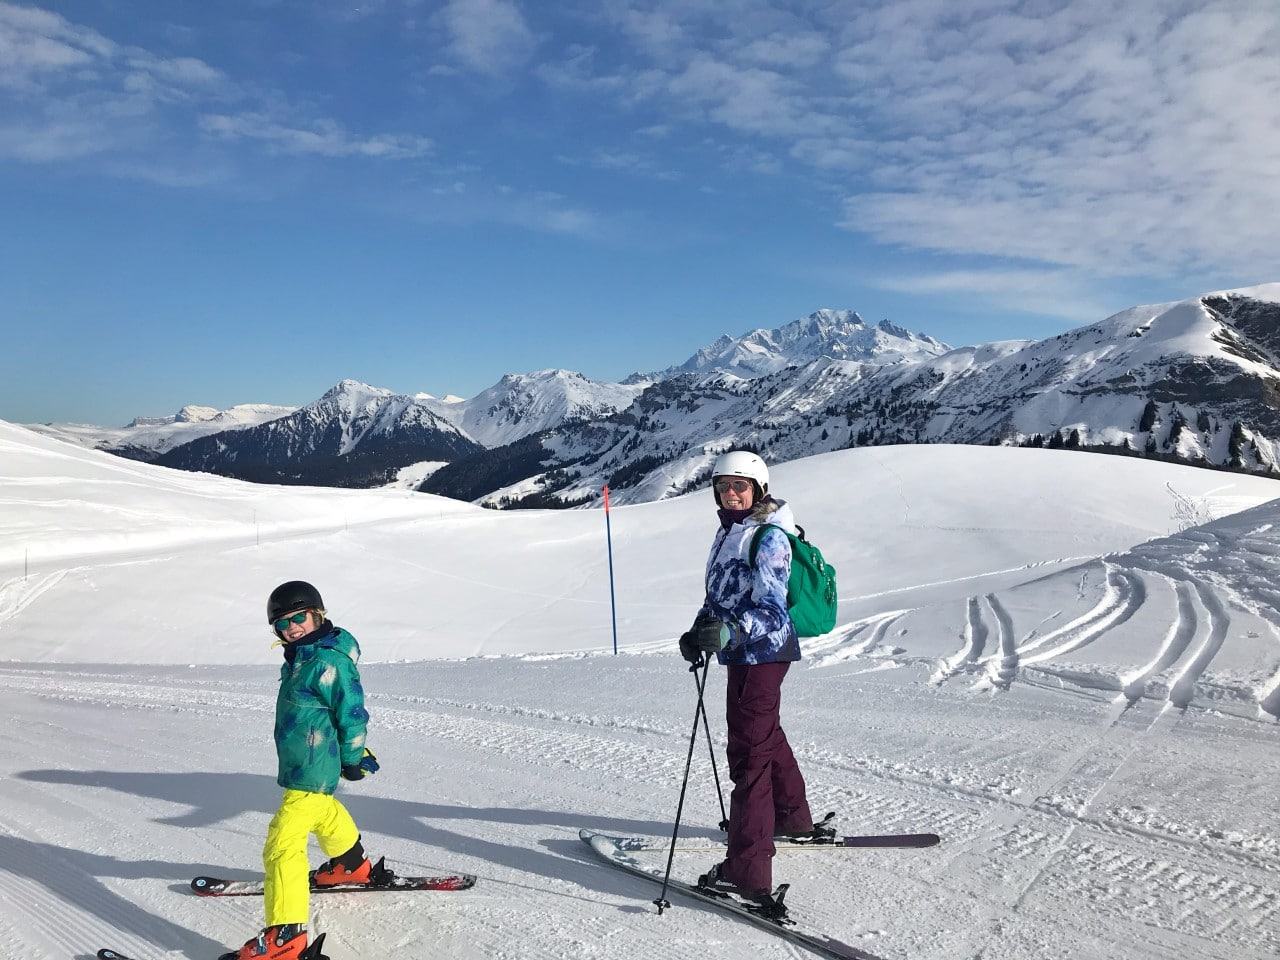 family ready for skiing in Alps